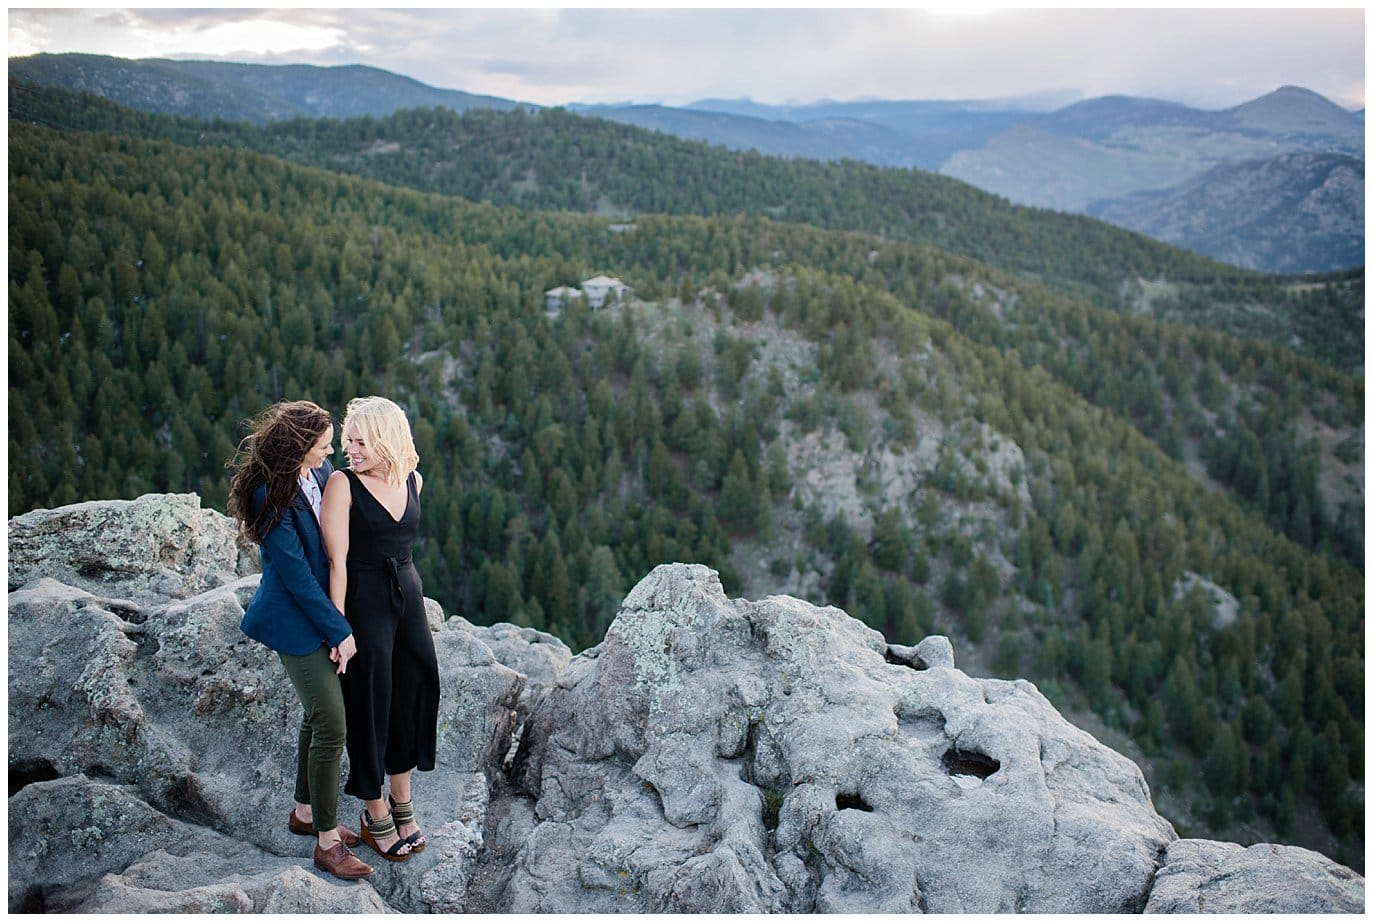 Lost Gulch Overlook sunset couples photo